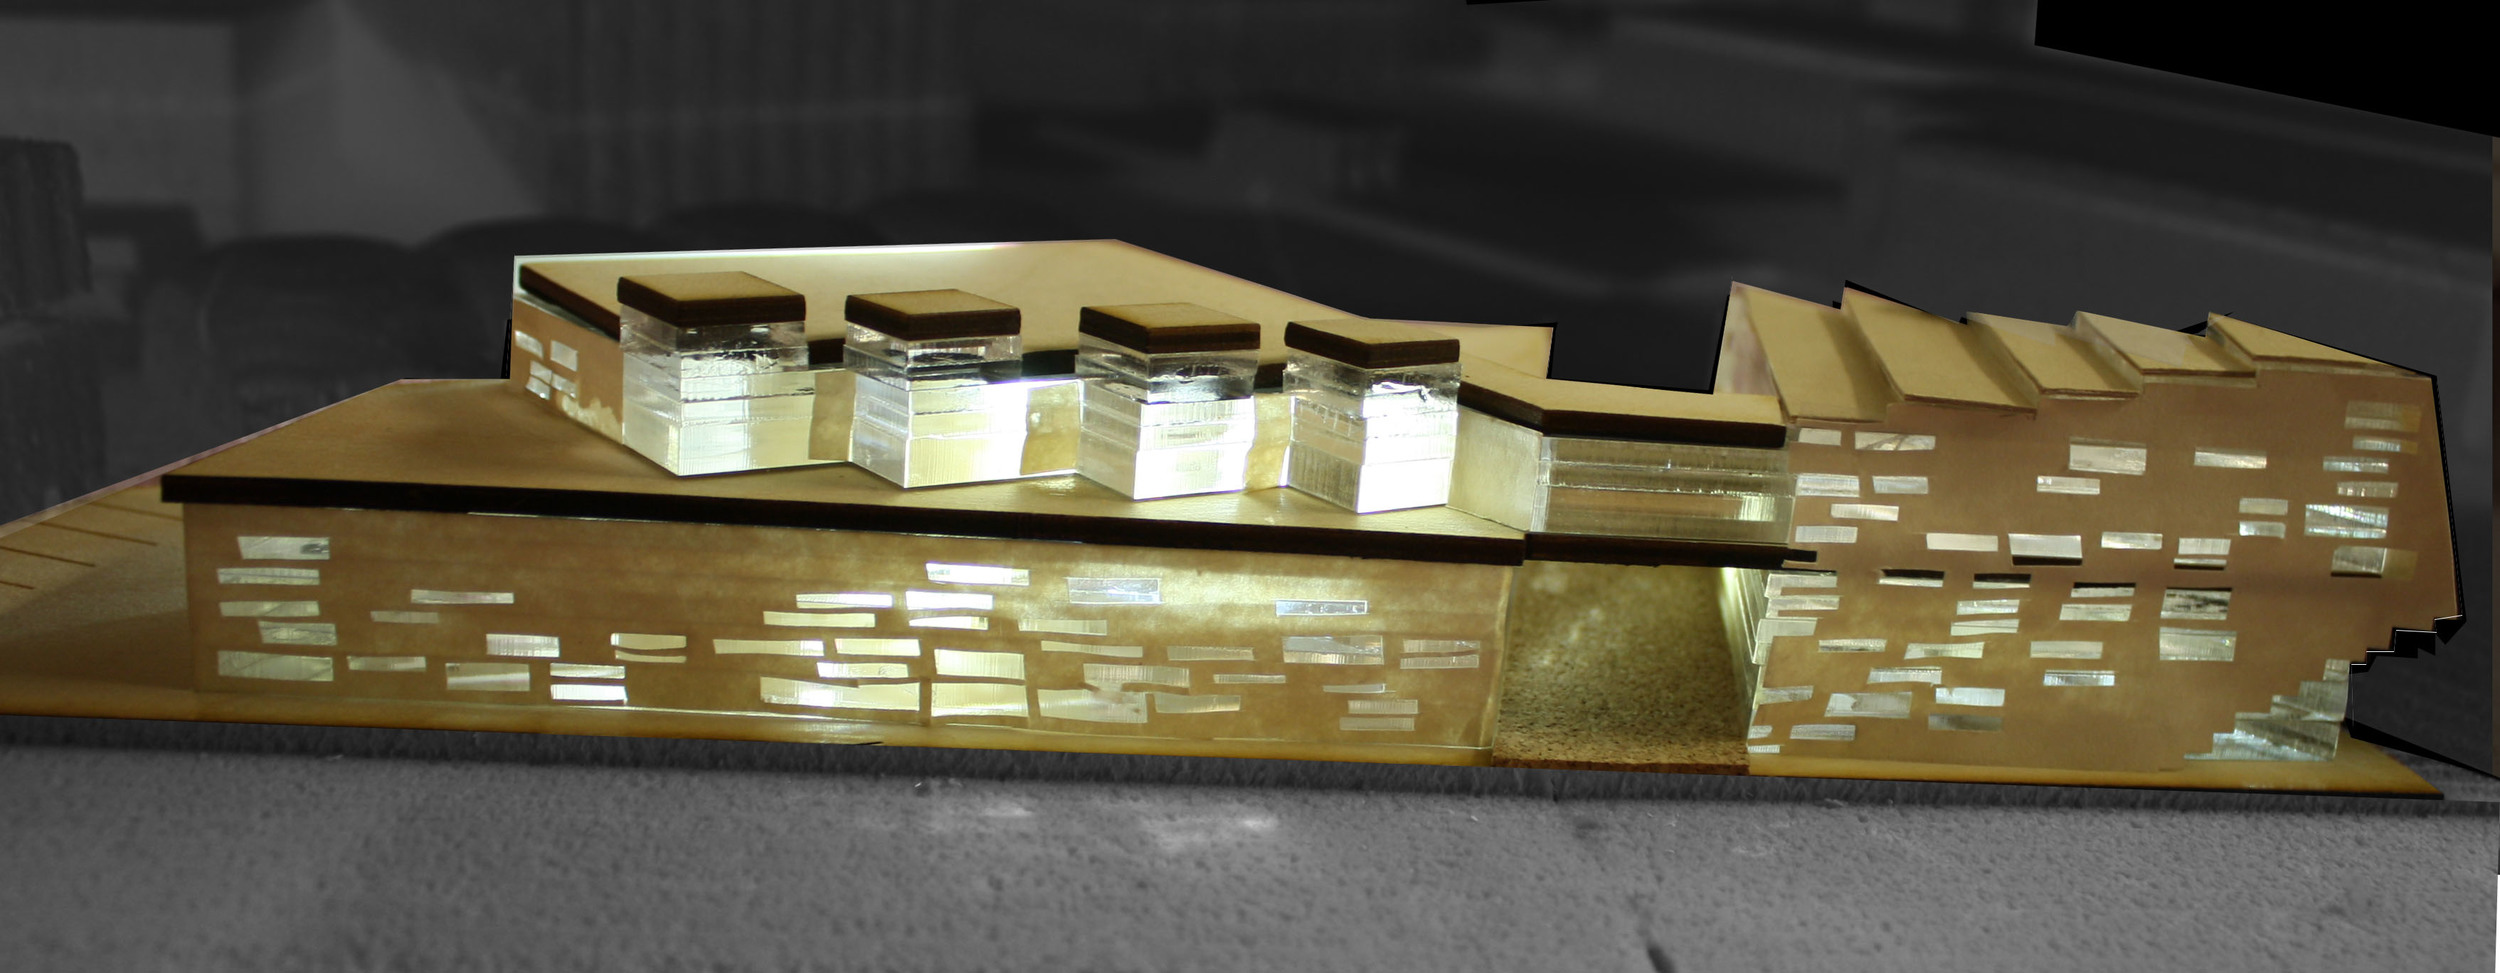 Model view of Eastern elevation. Illuminated study rooms on the second level are inspired by lanterns. They are beacons visible from the adjacent elevated subway platform.